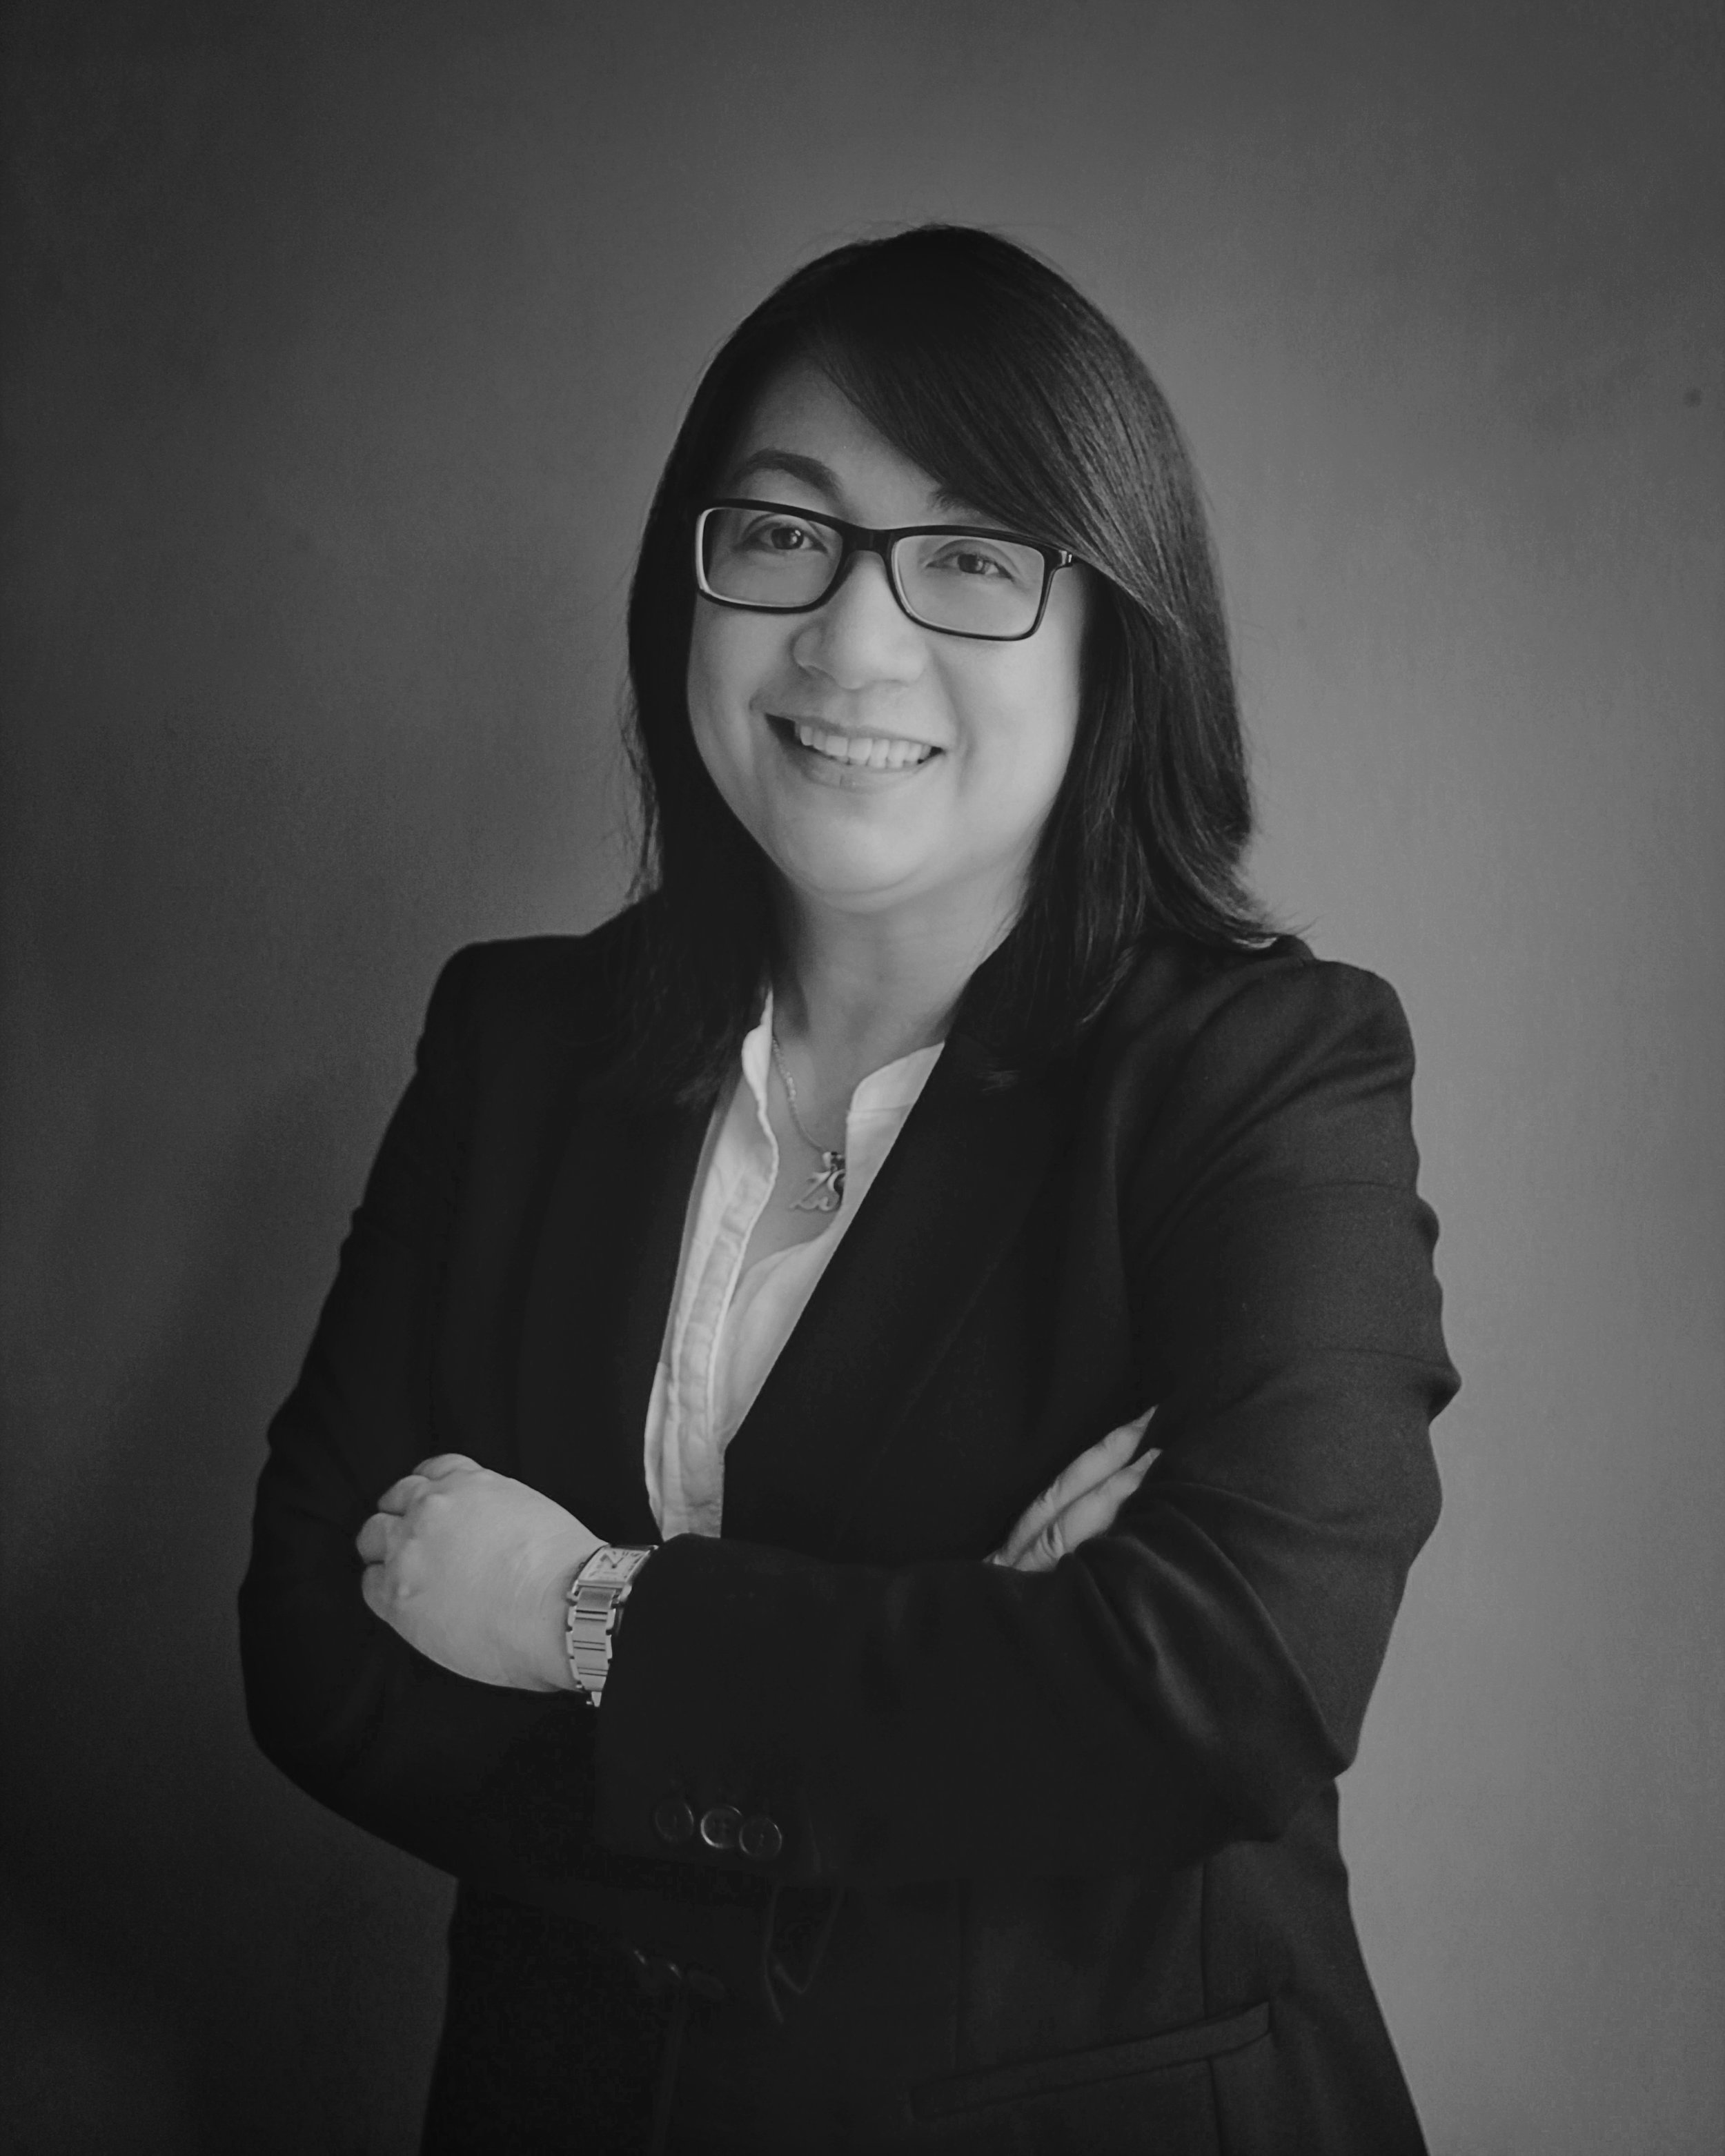 Lachmi Baviera , Program Head   Music Business Management   Former Warner Music Philippines General Manager, Lachmi Baviera is the newly installed program head for the Music Business Management program.   She will continue the legacy of the late Eugene Villaluz, founder of the MBM program, who passed away in 2017. Previously, Lachmi was at the helm of Warner Music Philippines, leading the record label into the digital age by transforming it from a traditional music label into a digital entertainment company. She brings her professional experience from the music business world to academia. She has made it her personal mission to uplift the Philippine music scene by providing more and more opportunities for independent artists to showcase their talent to a global market. Lachmi was also on the board of the Philippine Assoc. for the Recording Industry (PARI). She received her bachelor's degree in Marketing from St. Paul's College, Manila.